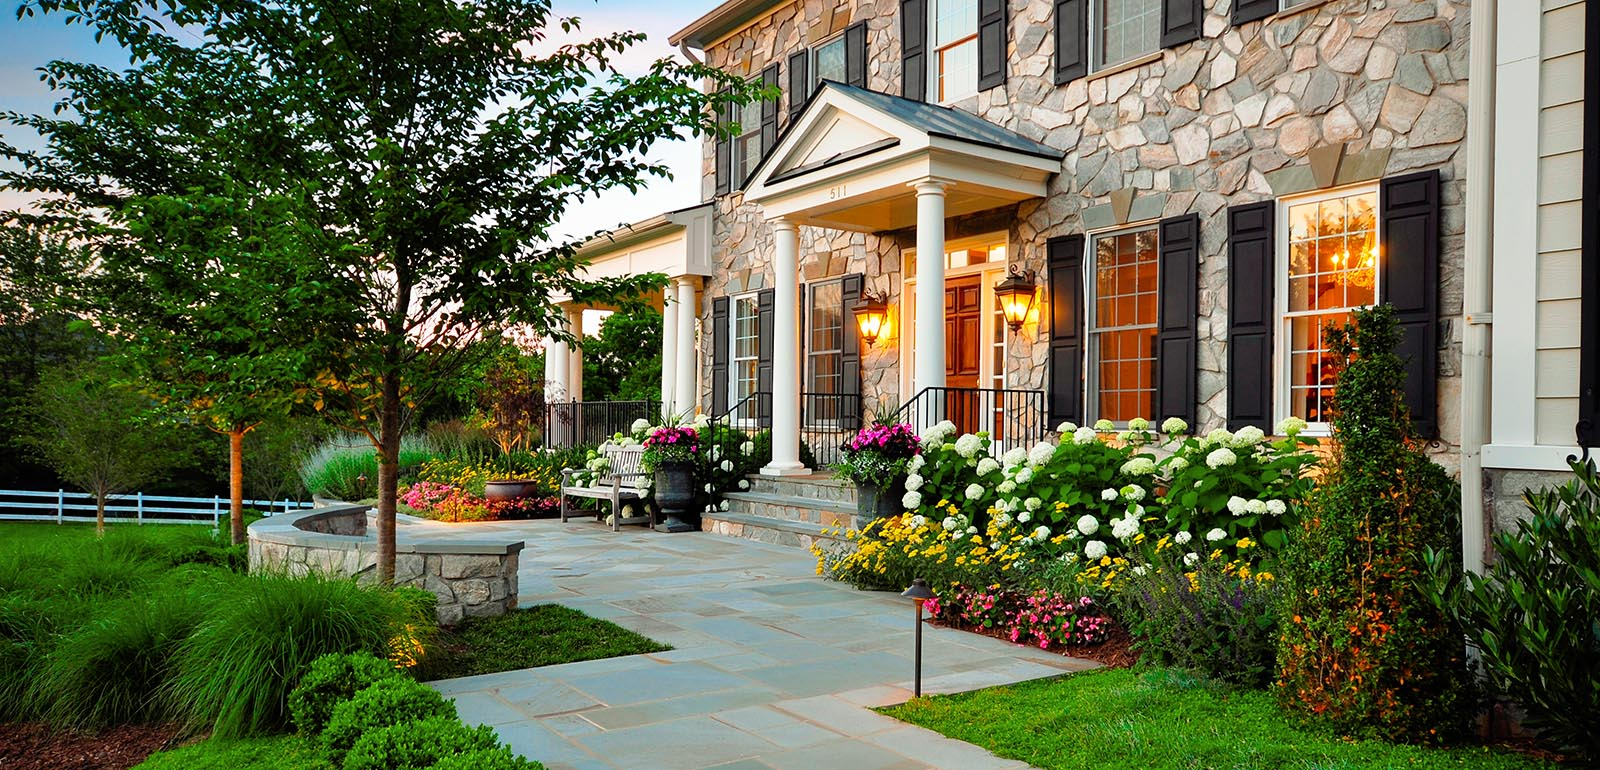 Some ideas of front yard landscaping for a small front for Plants for front of house ideas